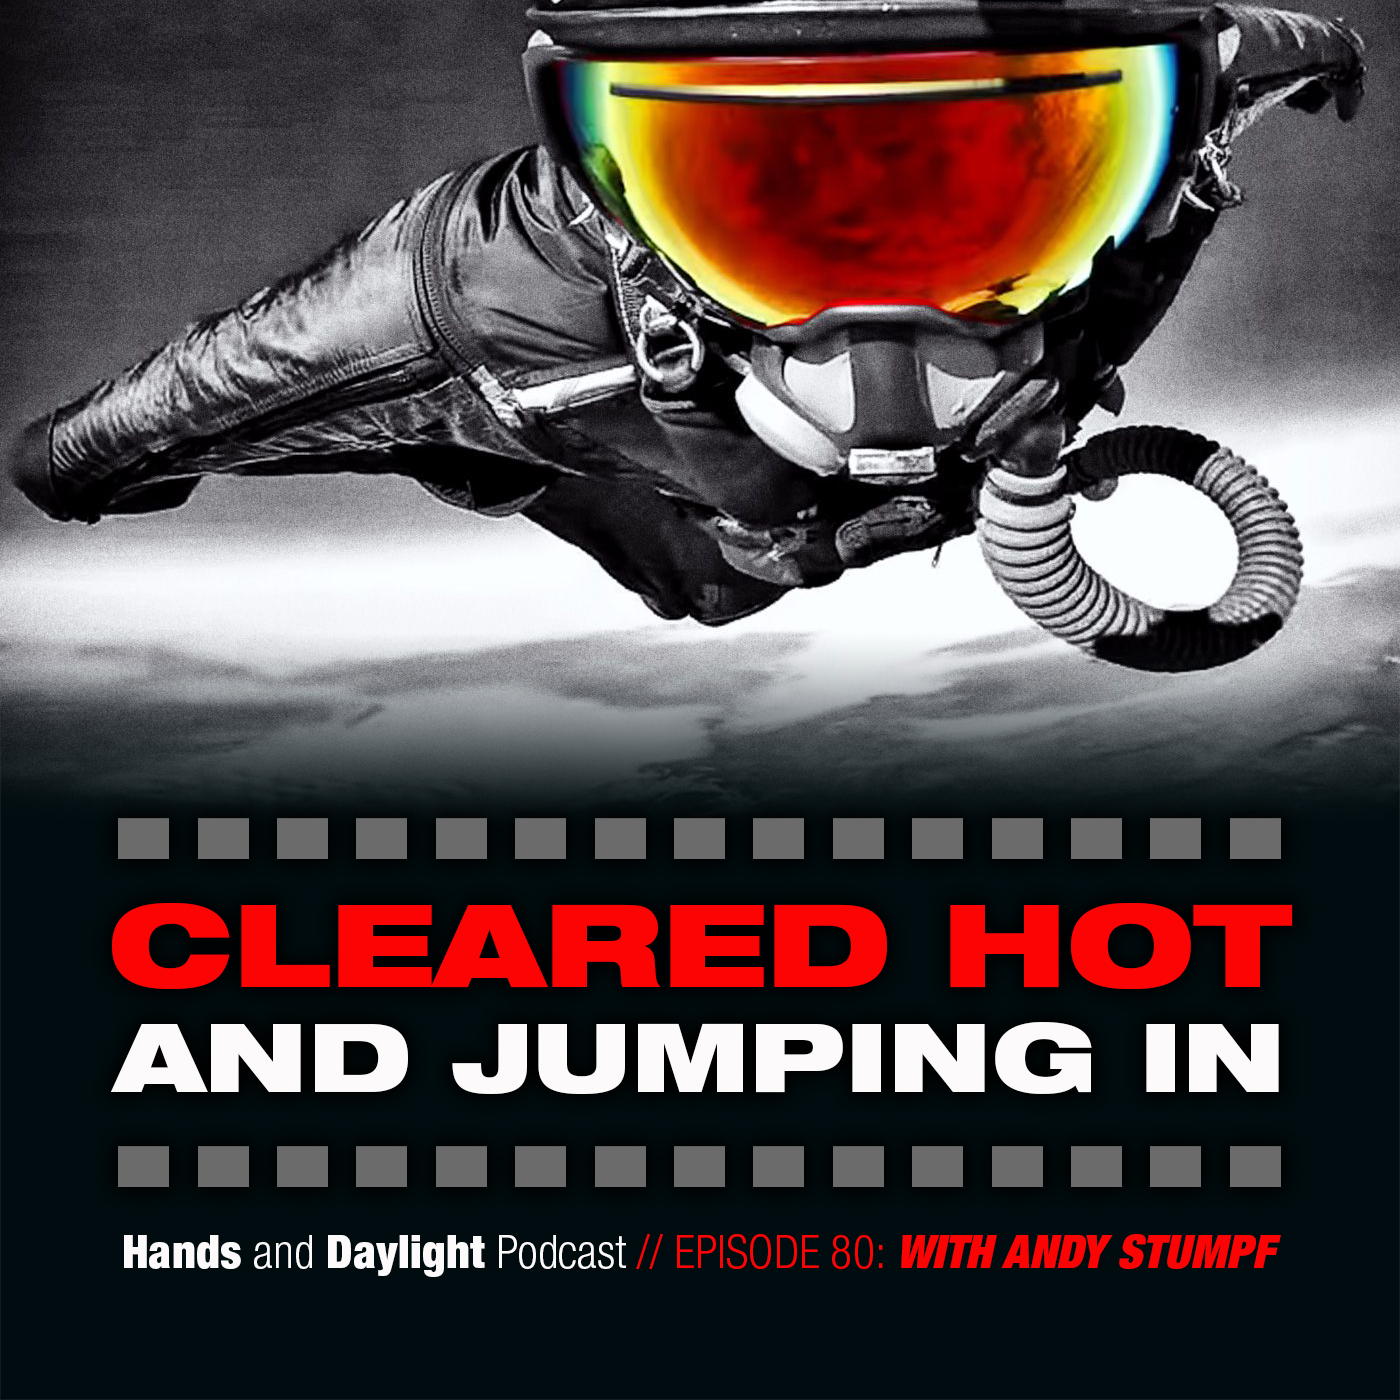 E80: CLEARED HOT AND JUMPING IN